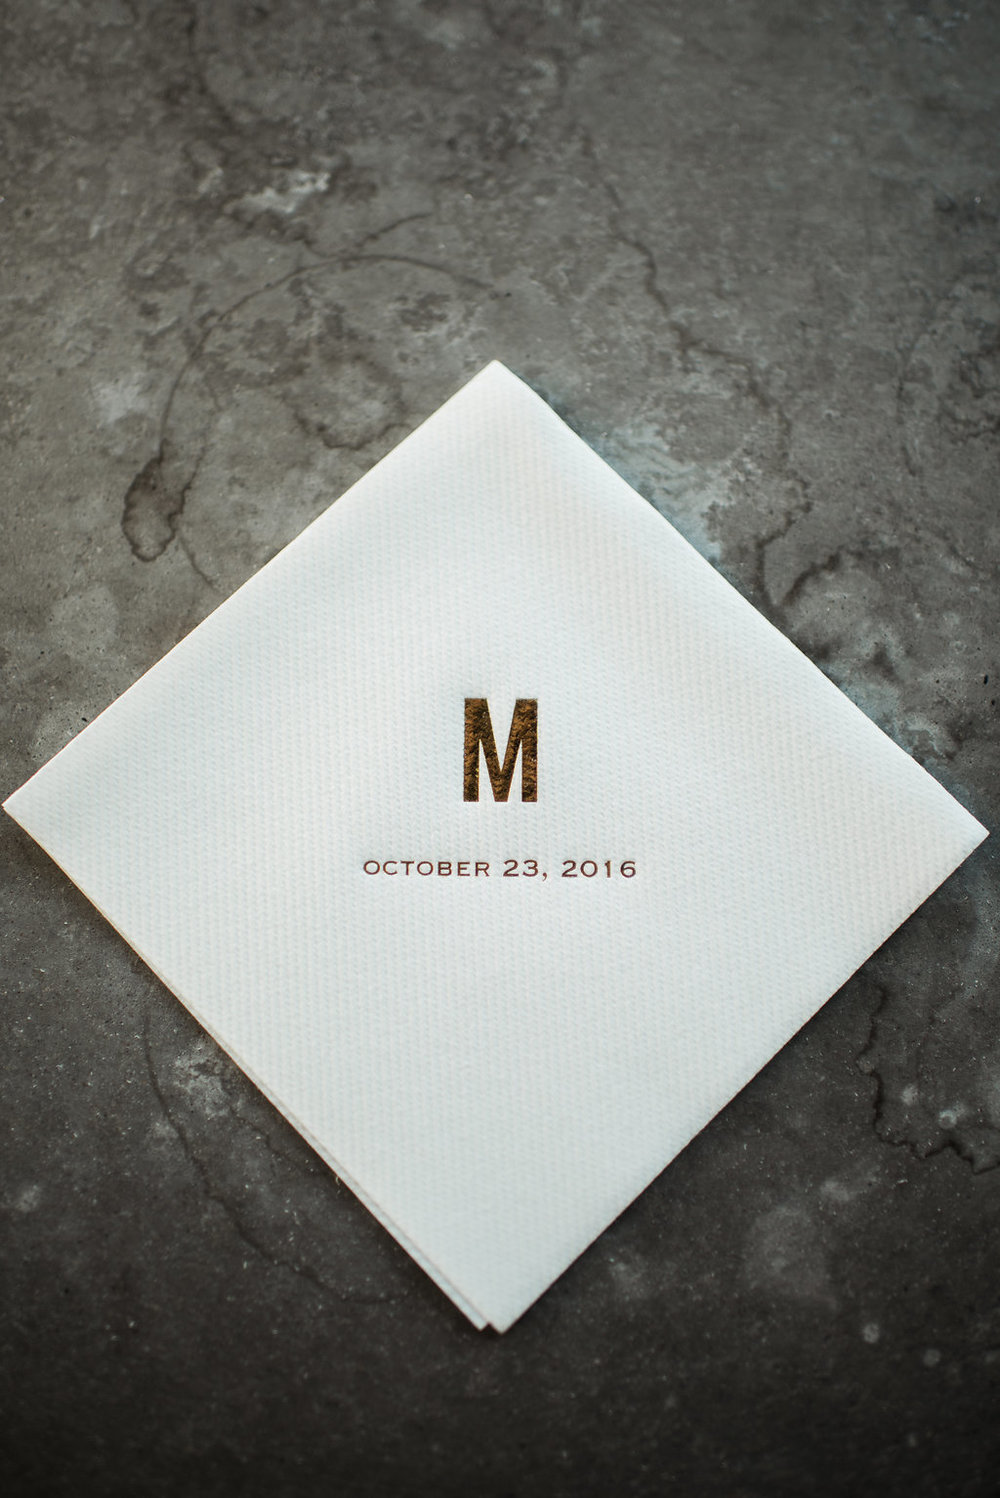 wile events  custom napkins